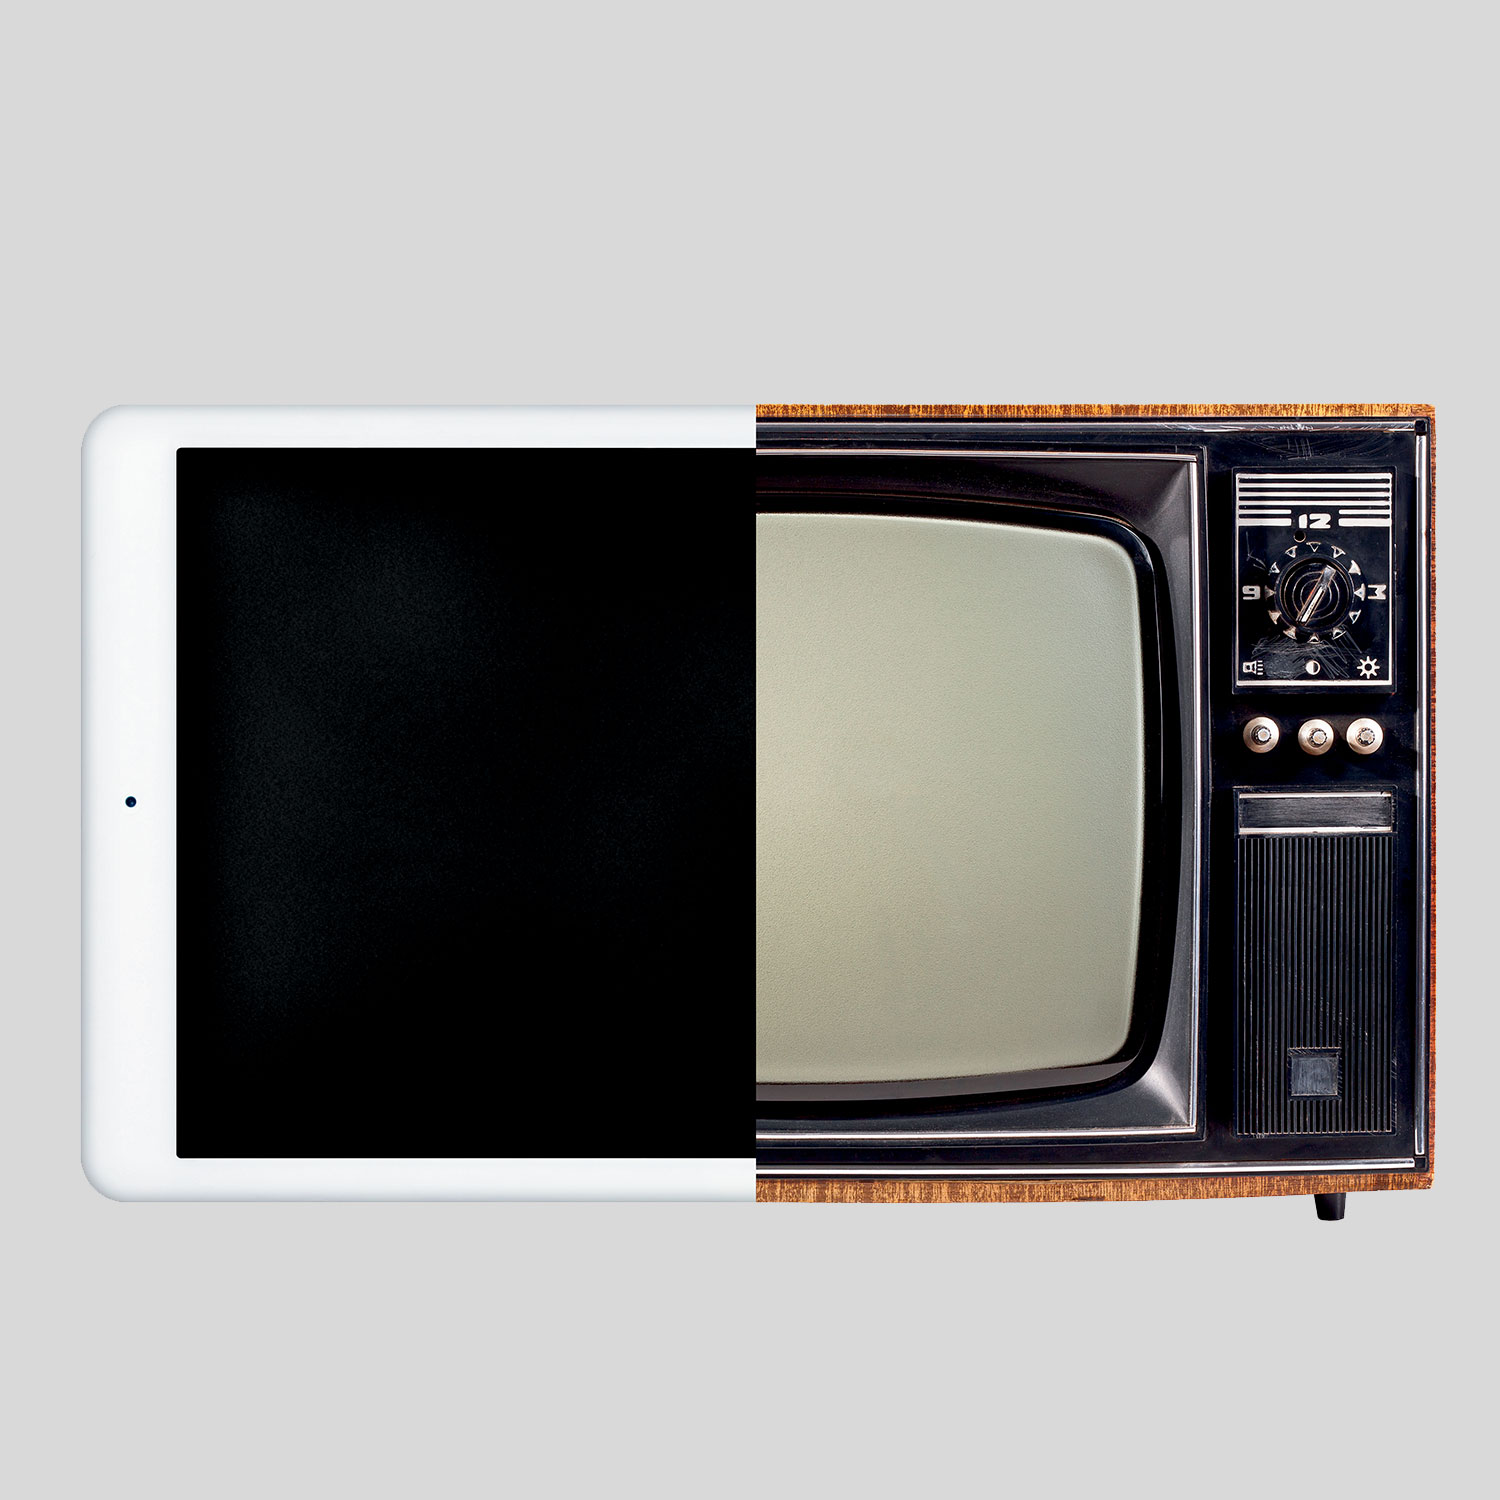 iPad and TV